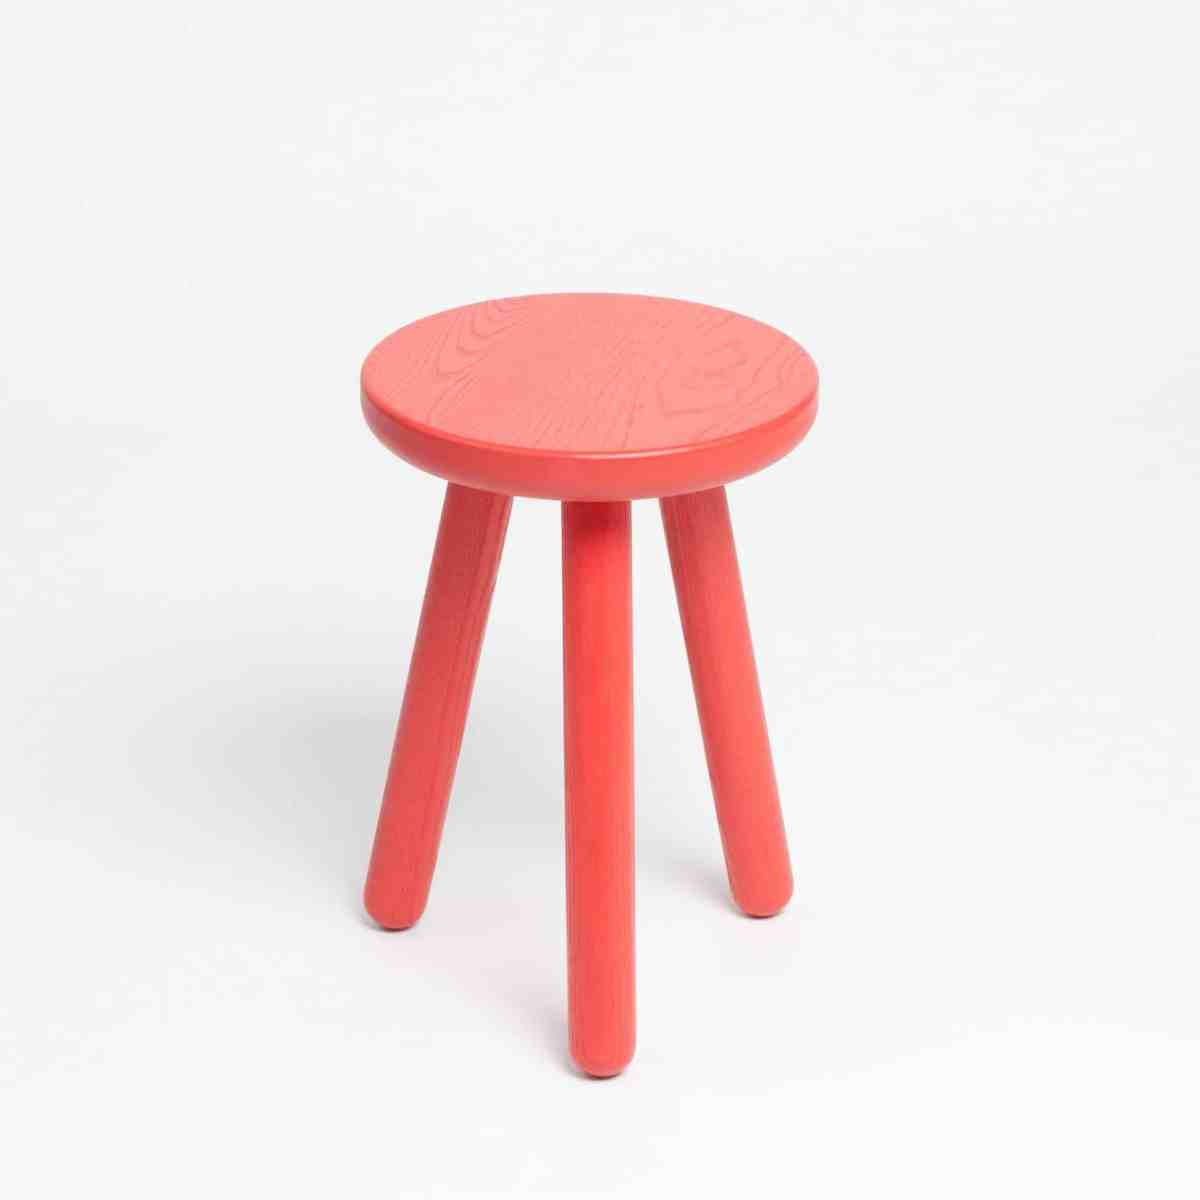 stool-one-red-another-country-001